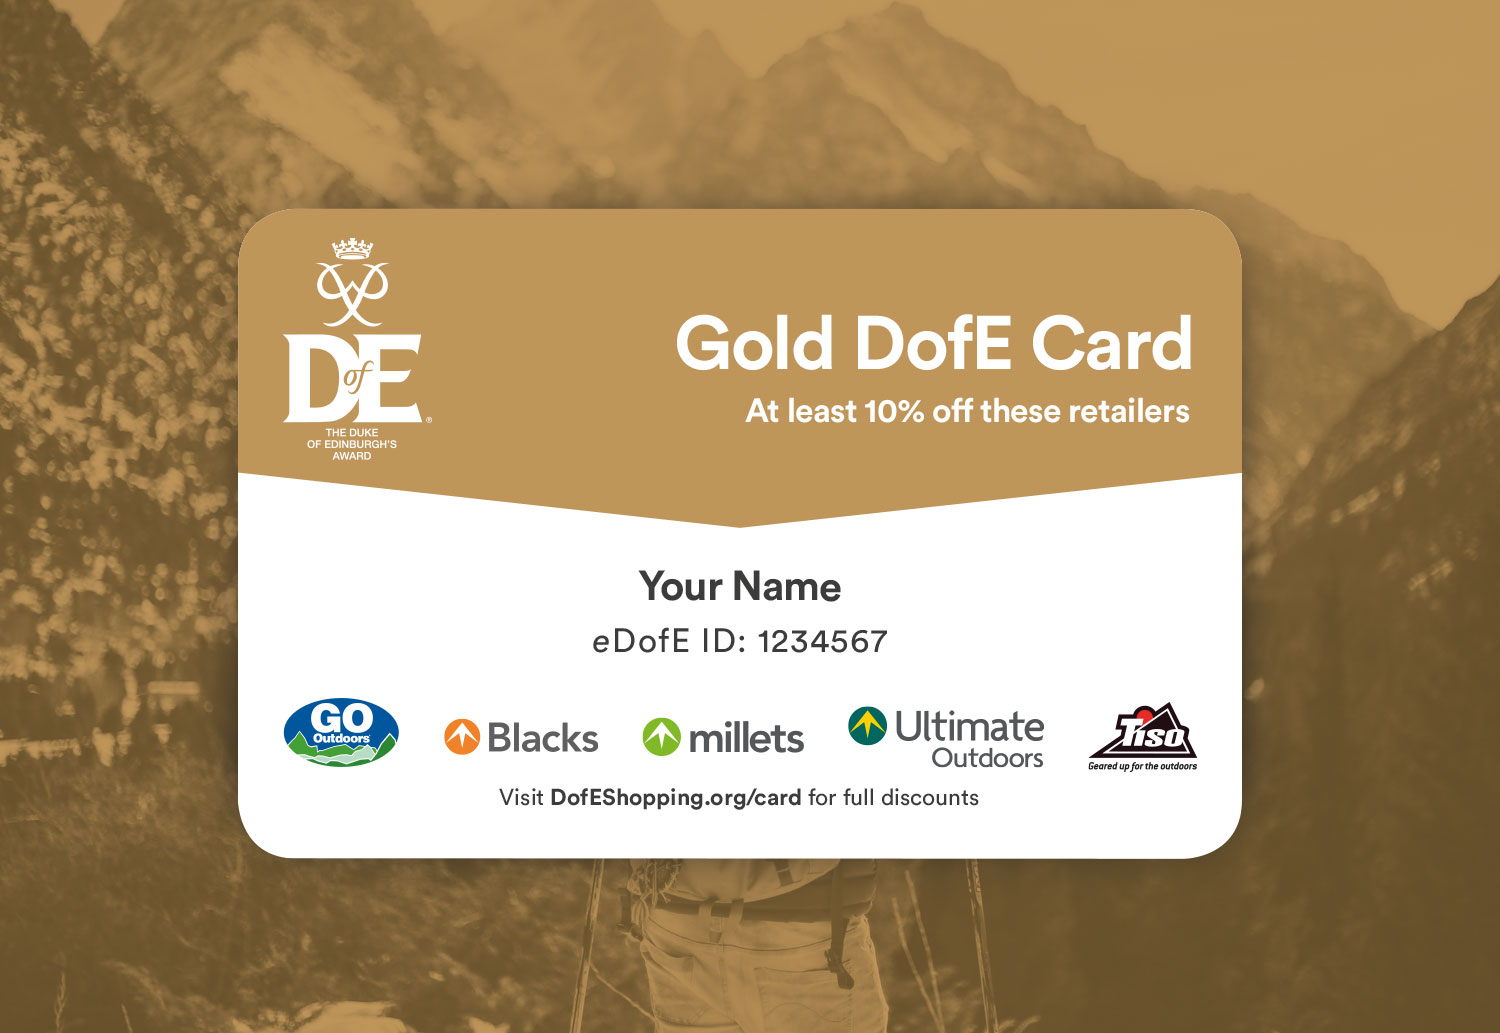 DofE Gold Reward Card Design